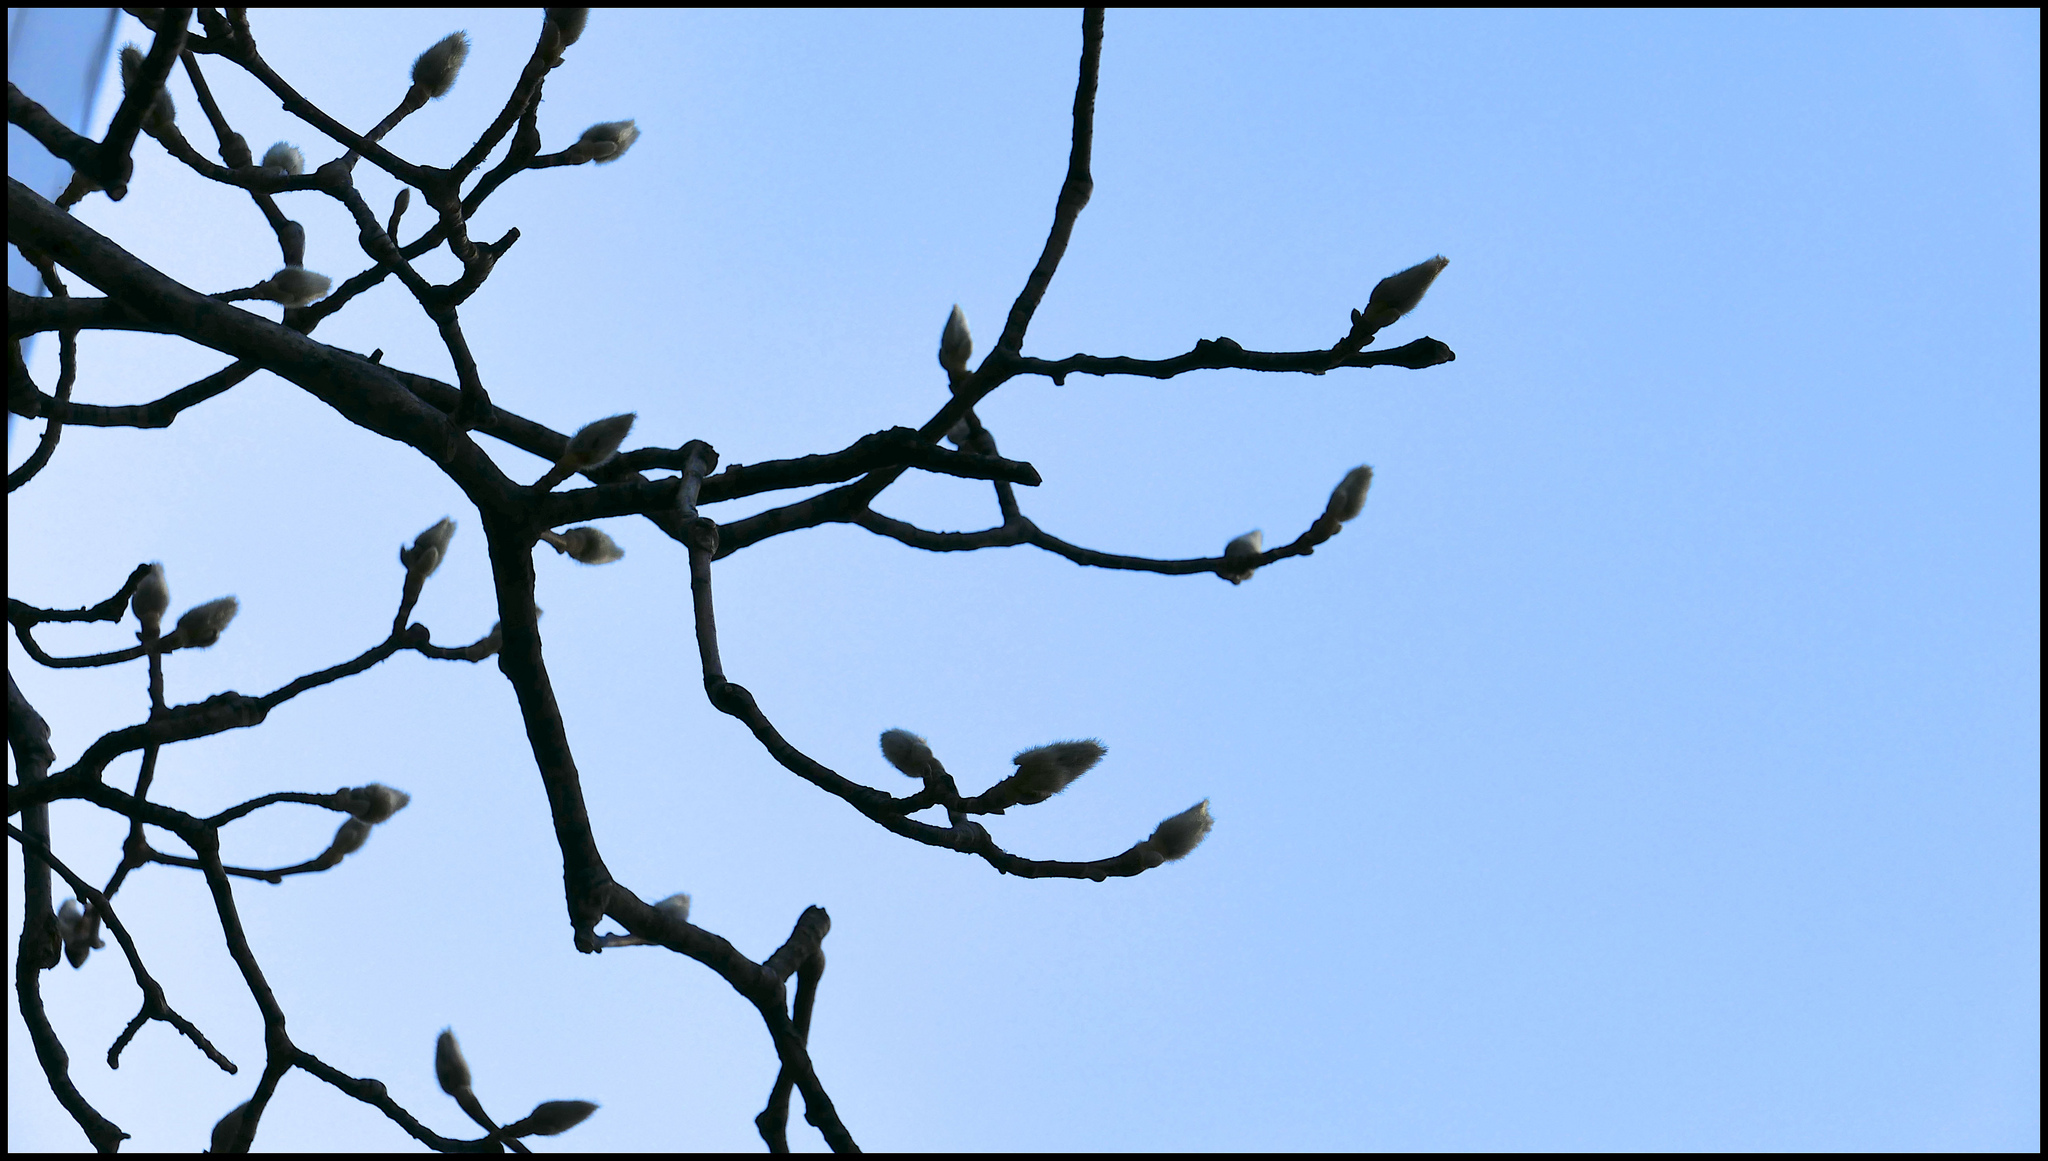 Waiting to blossom …